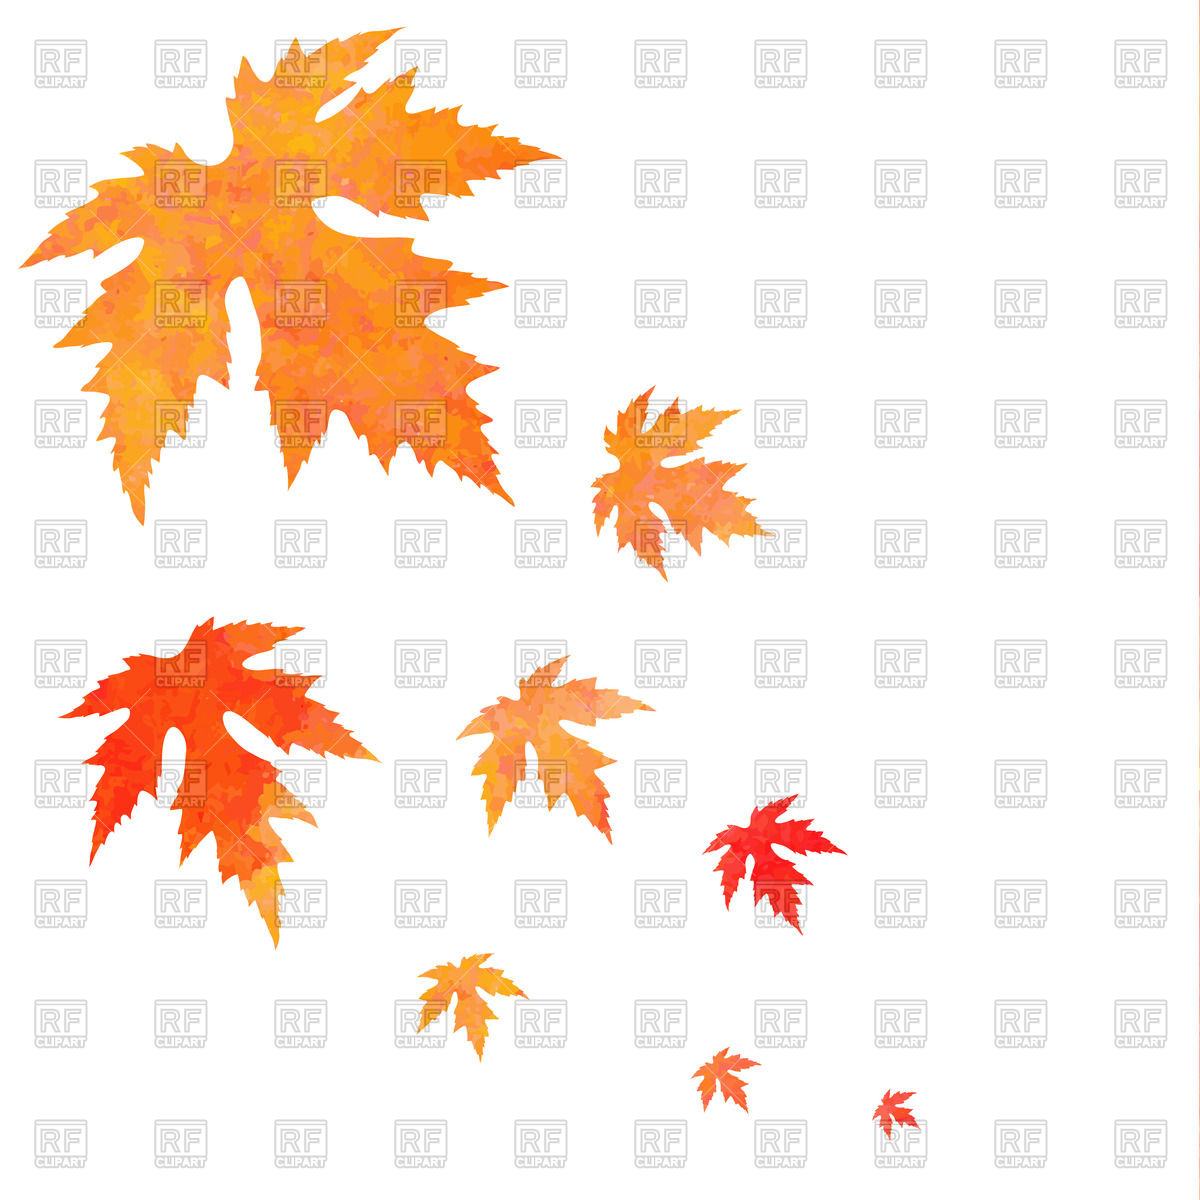 1200x1200 Watercolor Painted Orange Falling Maple Leaves Royalty Free Vector